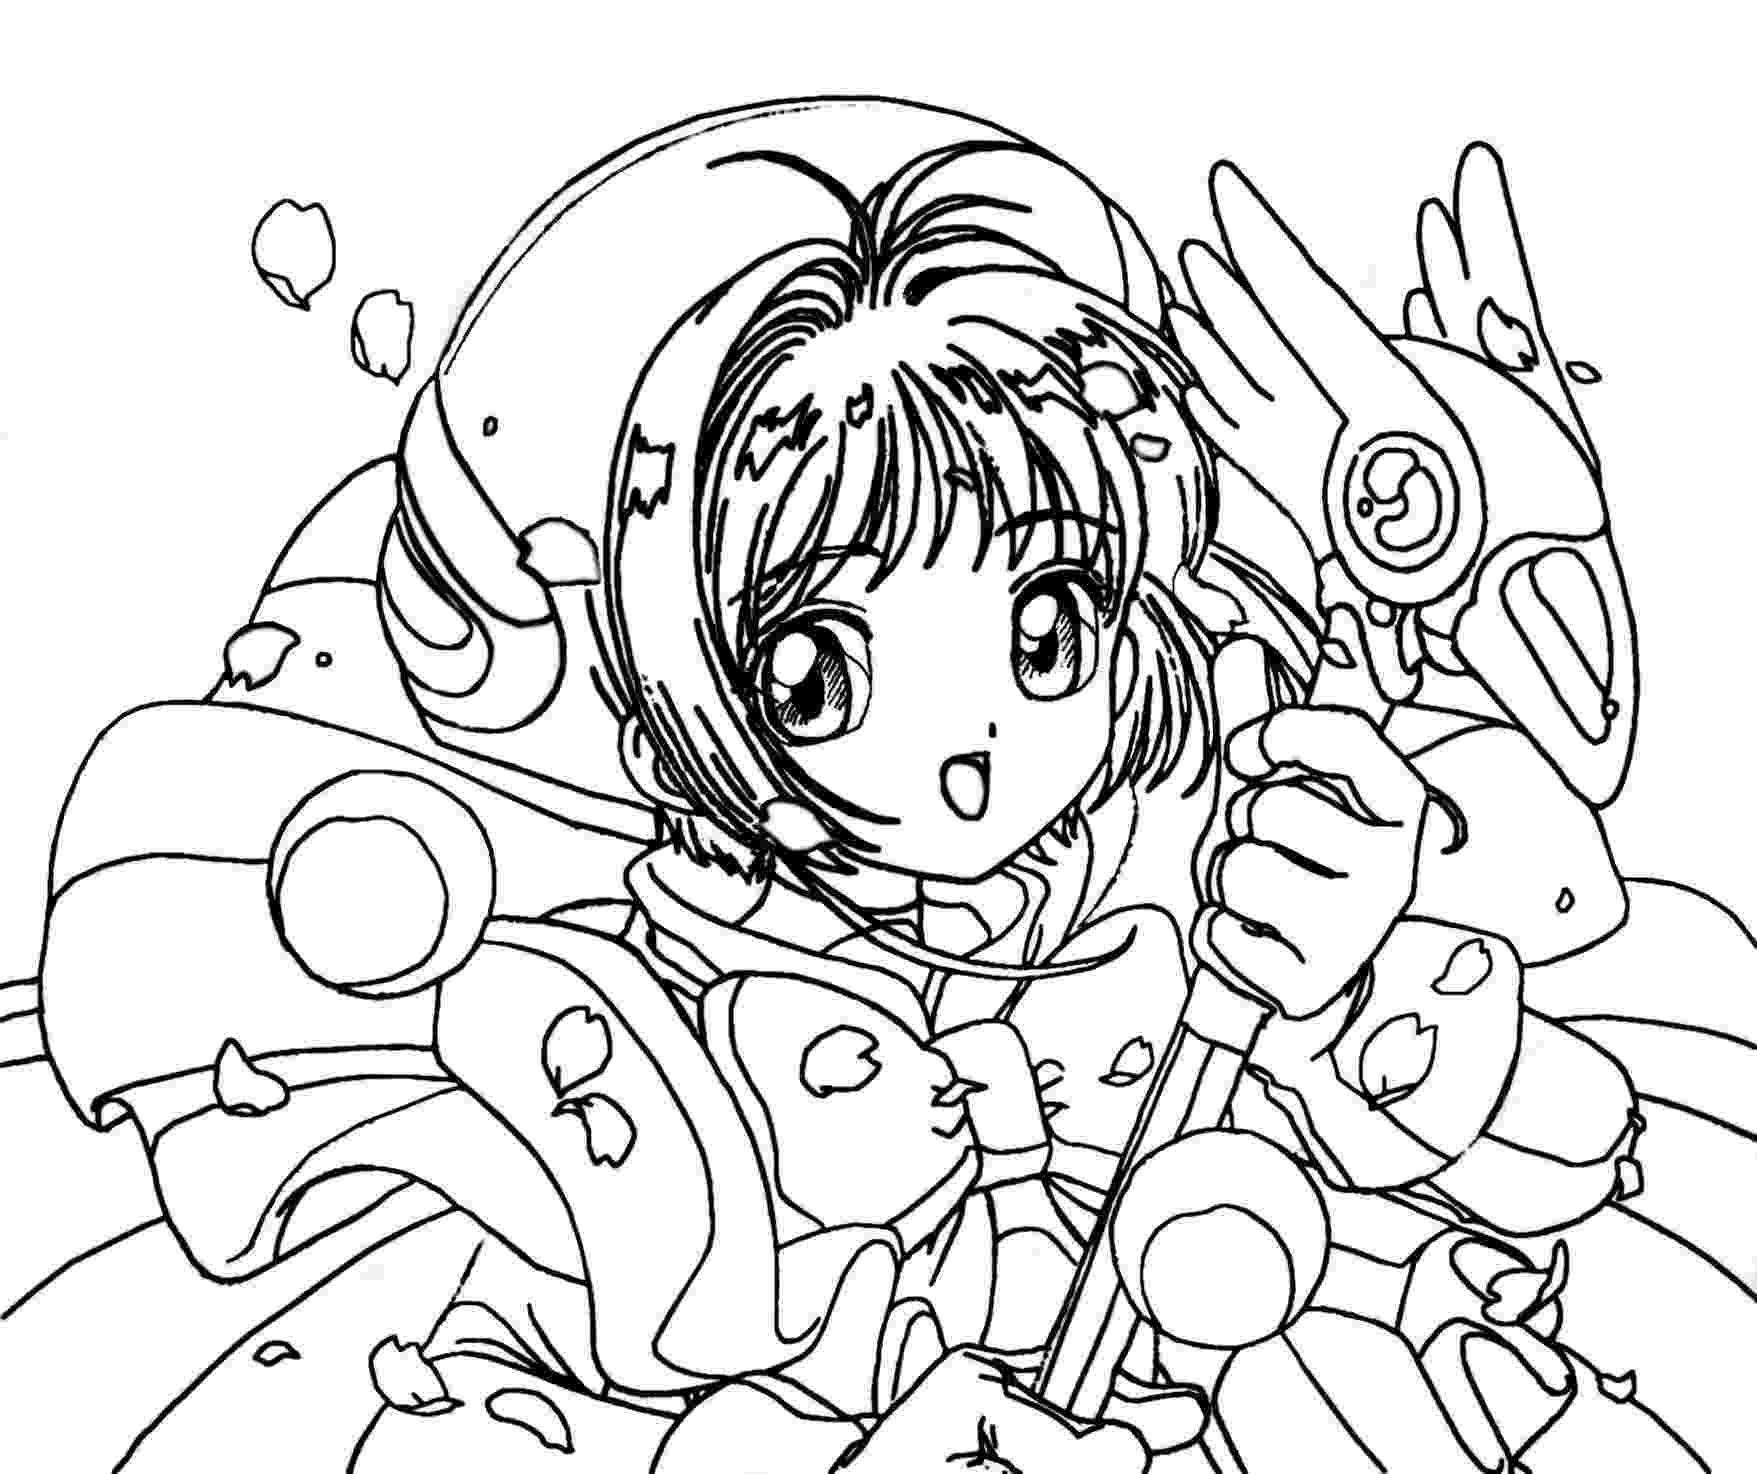 cute anime coloring pages cute anime girl coloring pages to print free coloring books coloring anime cute pages